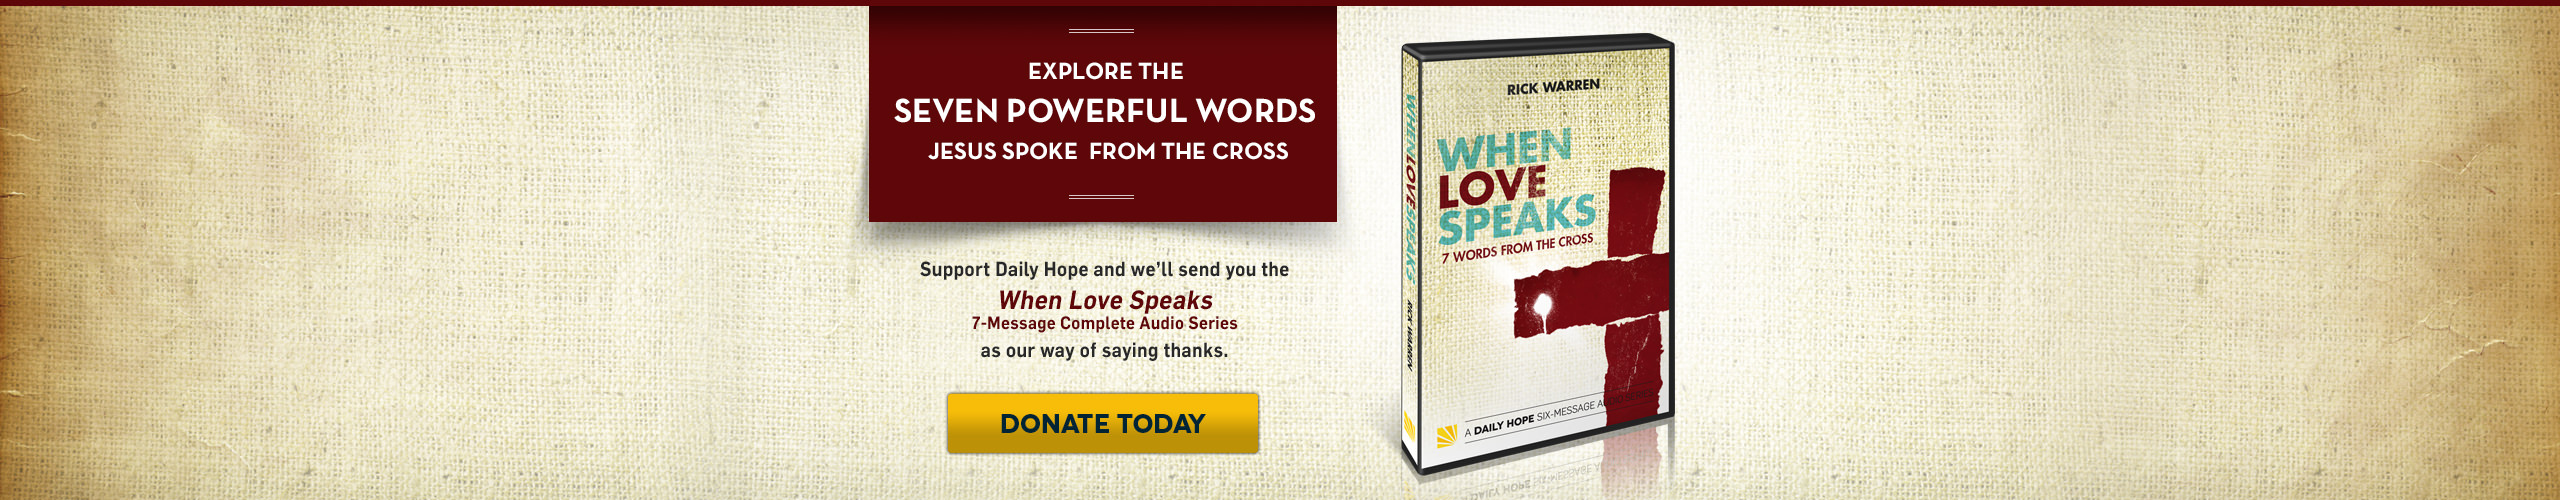 When-Love-Speaks